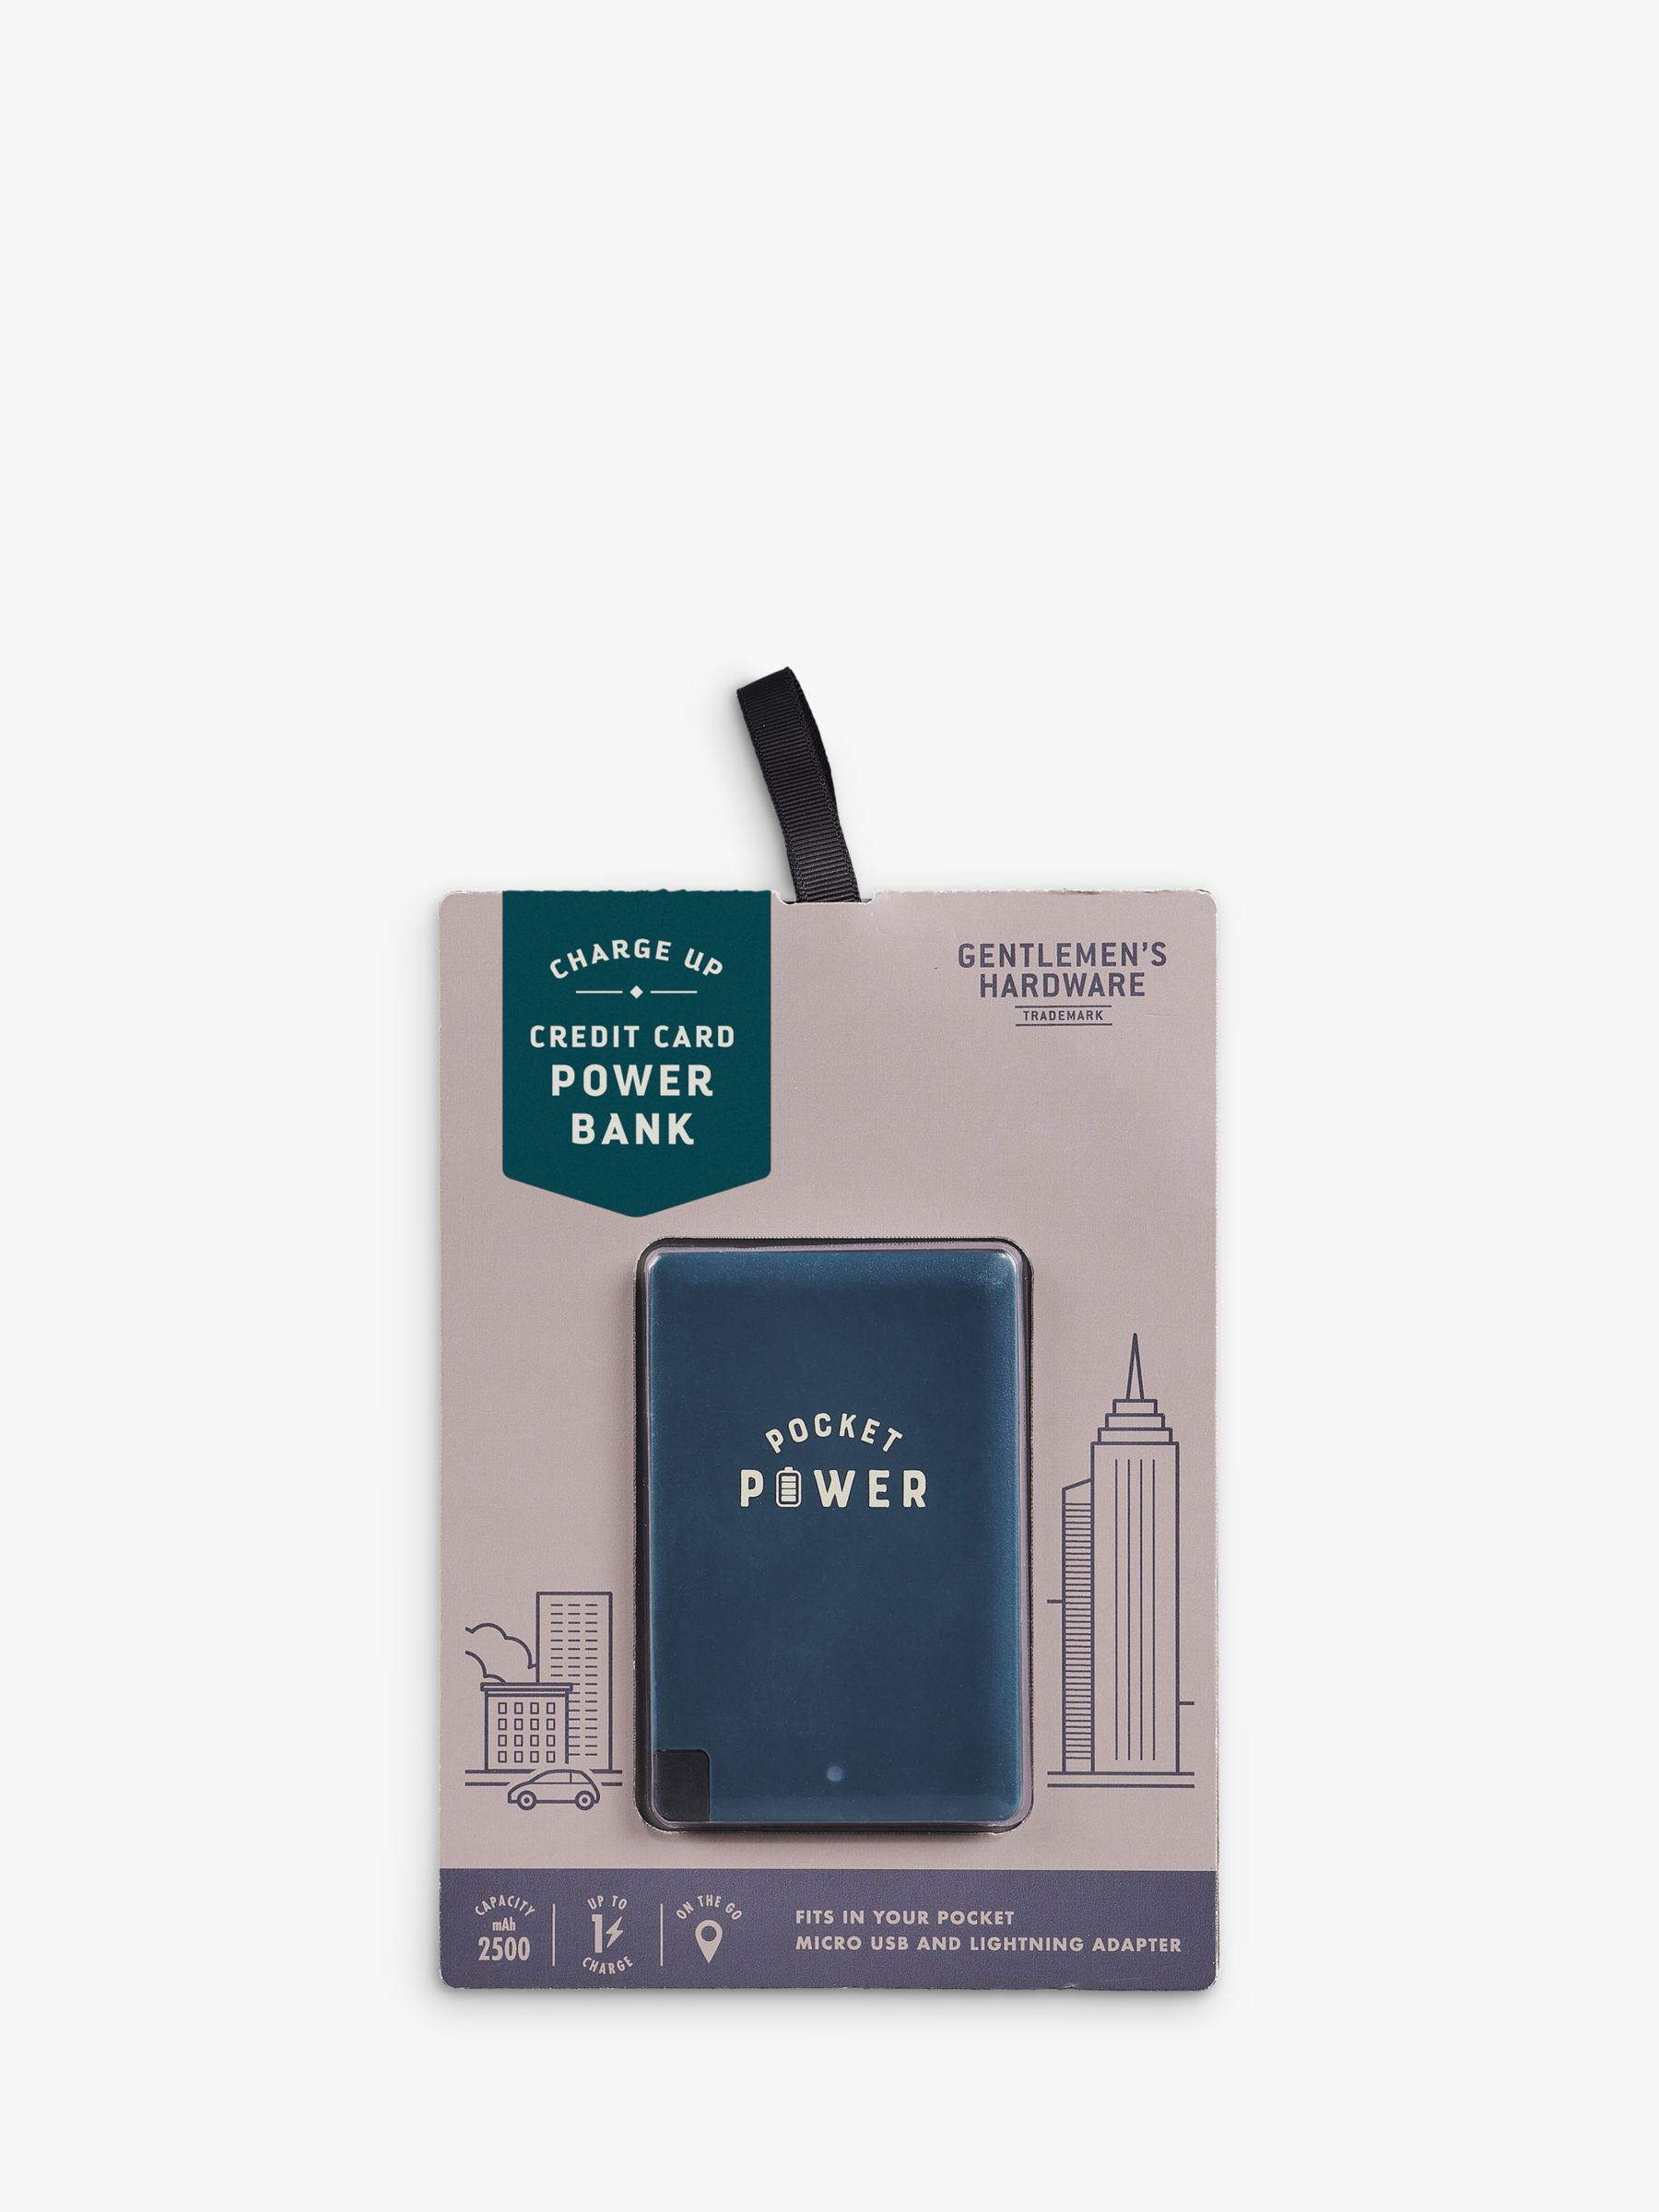 Gentlemen's Hardware Gentlemen's Hardware Card Sized Power Bank